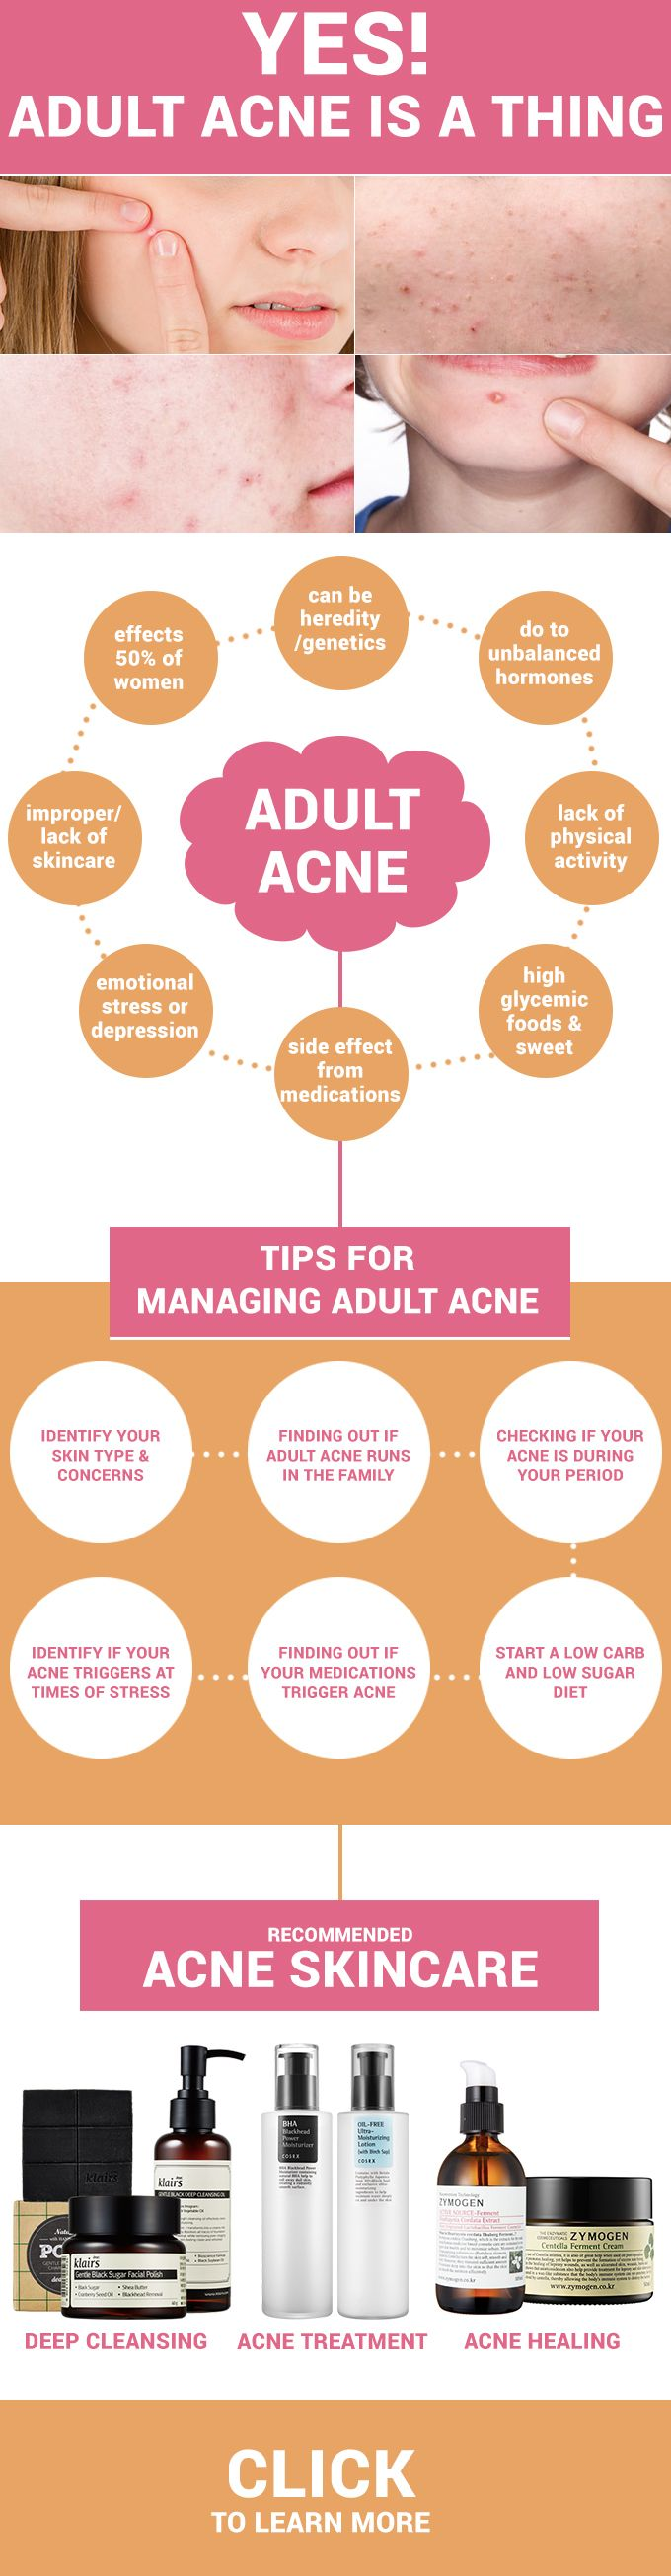 Yes, Adult Acne Is A Thing